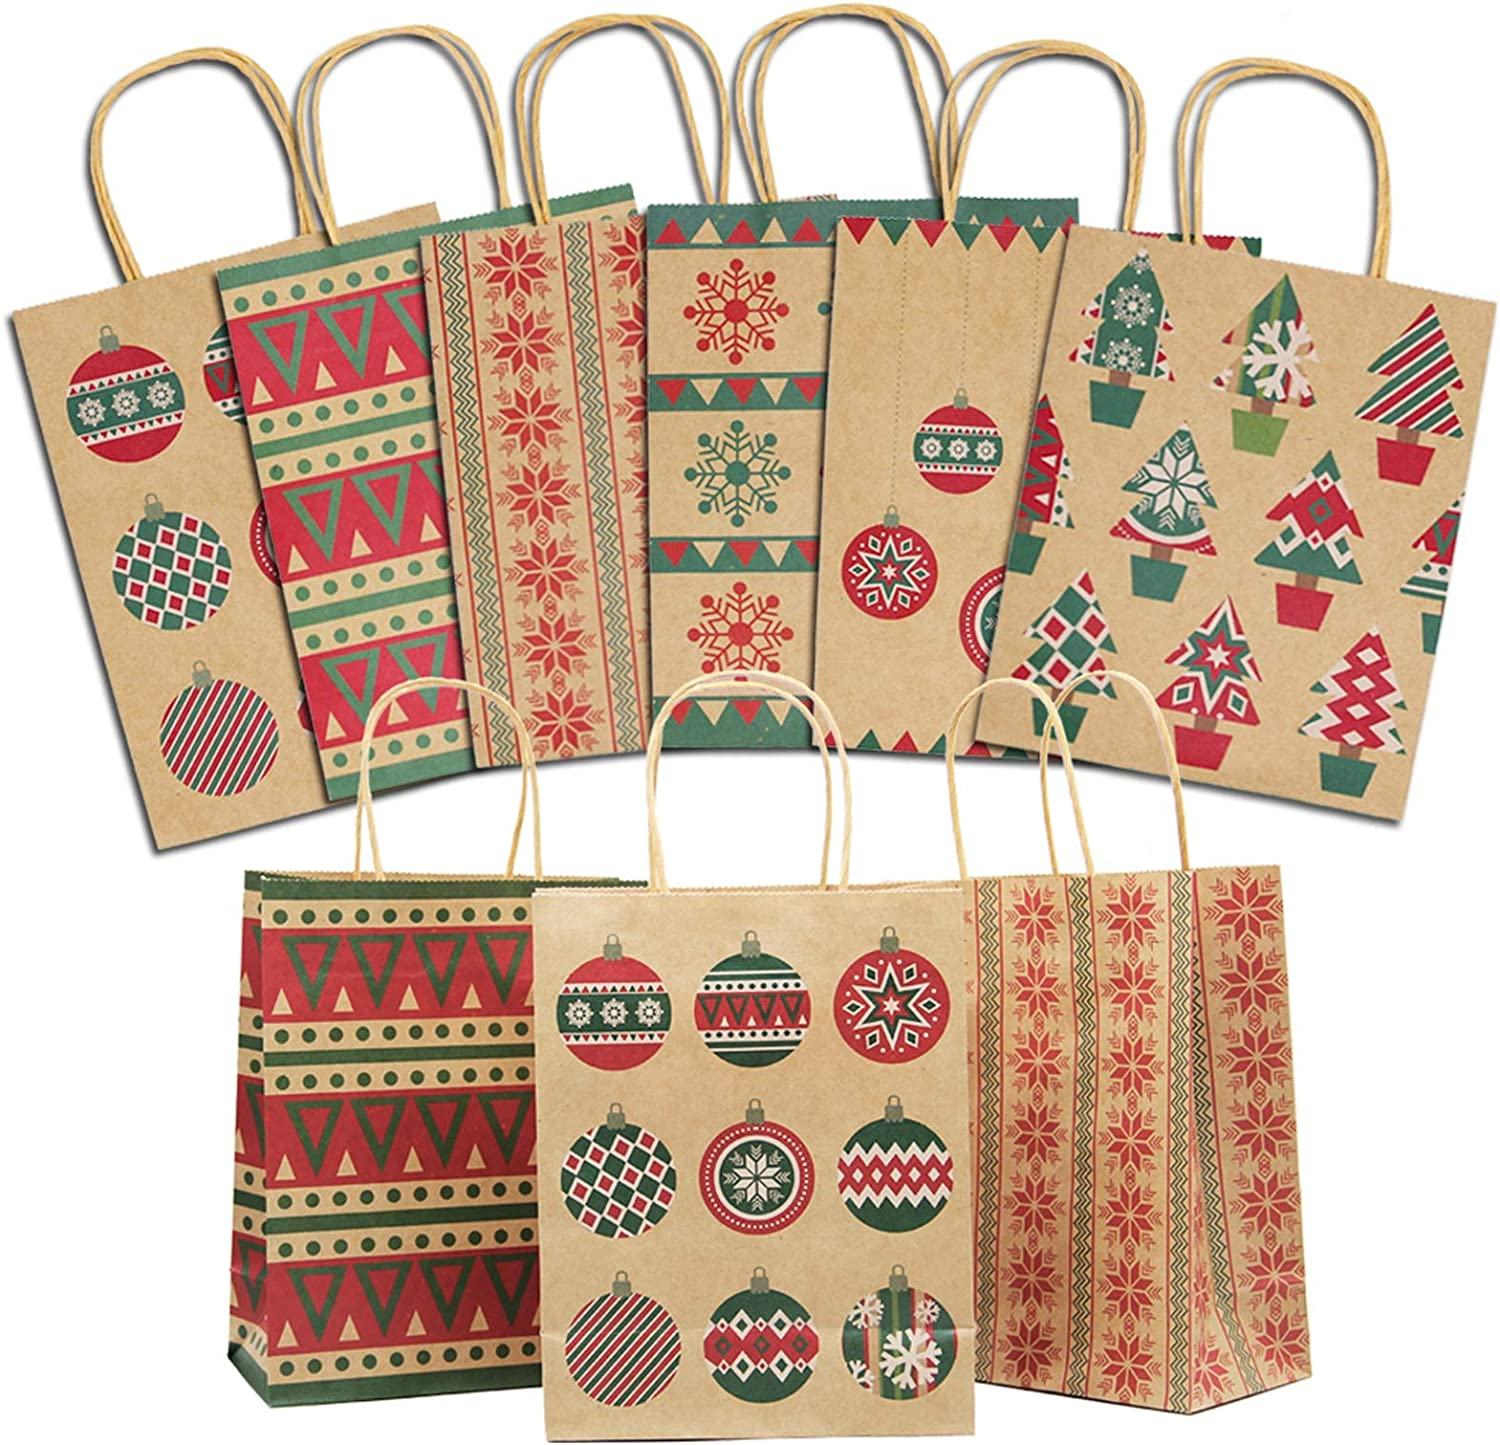 Lulu Home Christmas Paper Gift Bags with Handle, 24 Pieces Medium Christmas Kraft Paper Bags with Handle, Assorted Christmas Prints for Party Favors